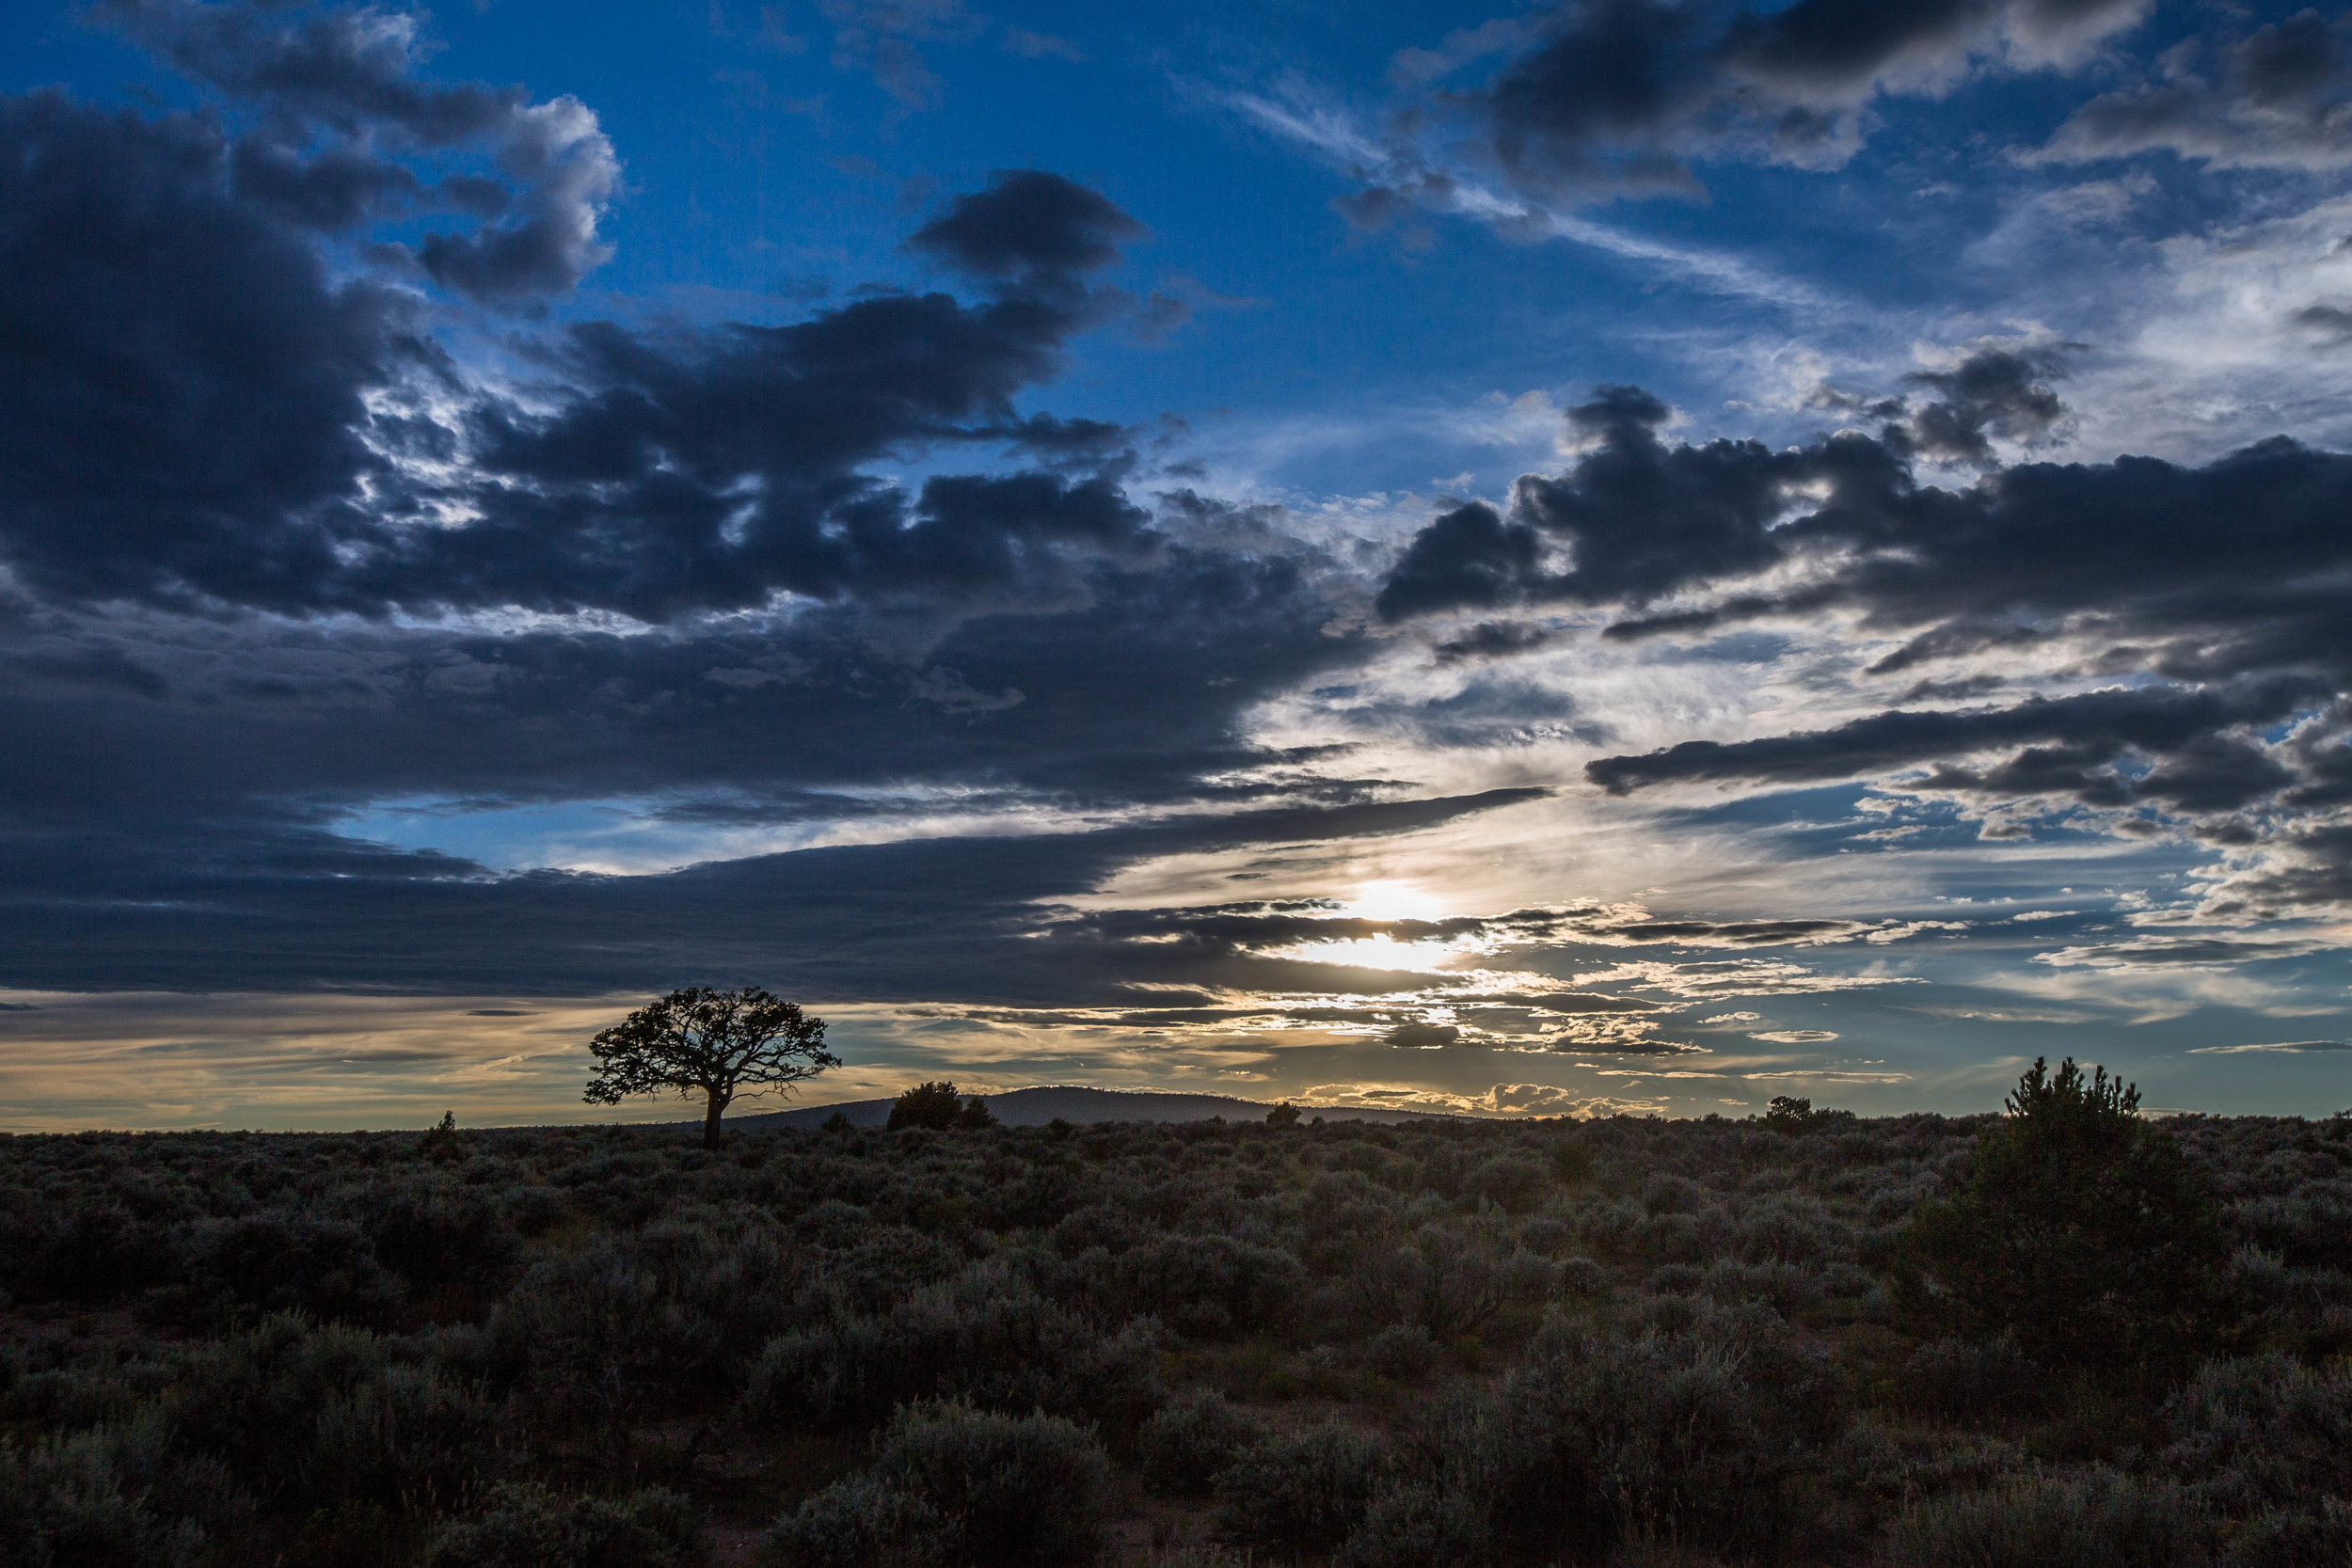 taos plateau - Sunset over the sagebrush plains of the Taos Plateau volcanic field at Rio Grande del Norte National Monument, New Mexico.